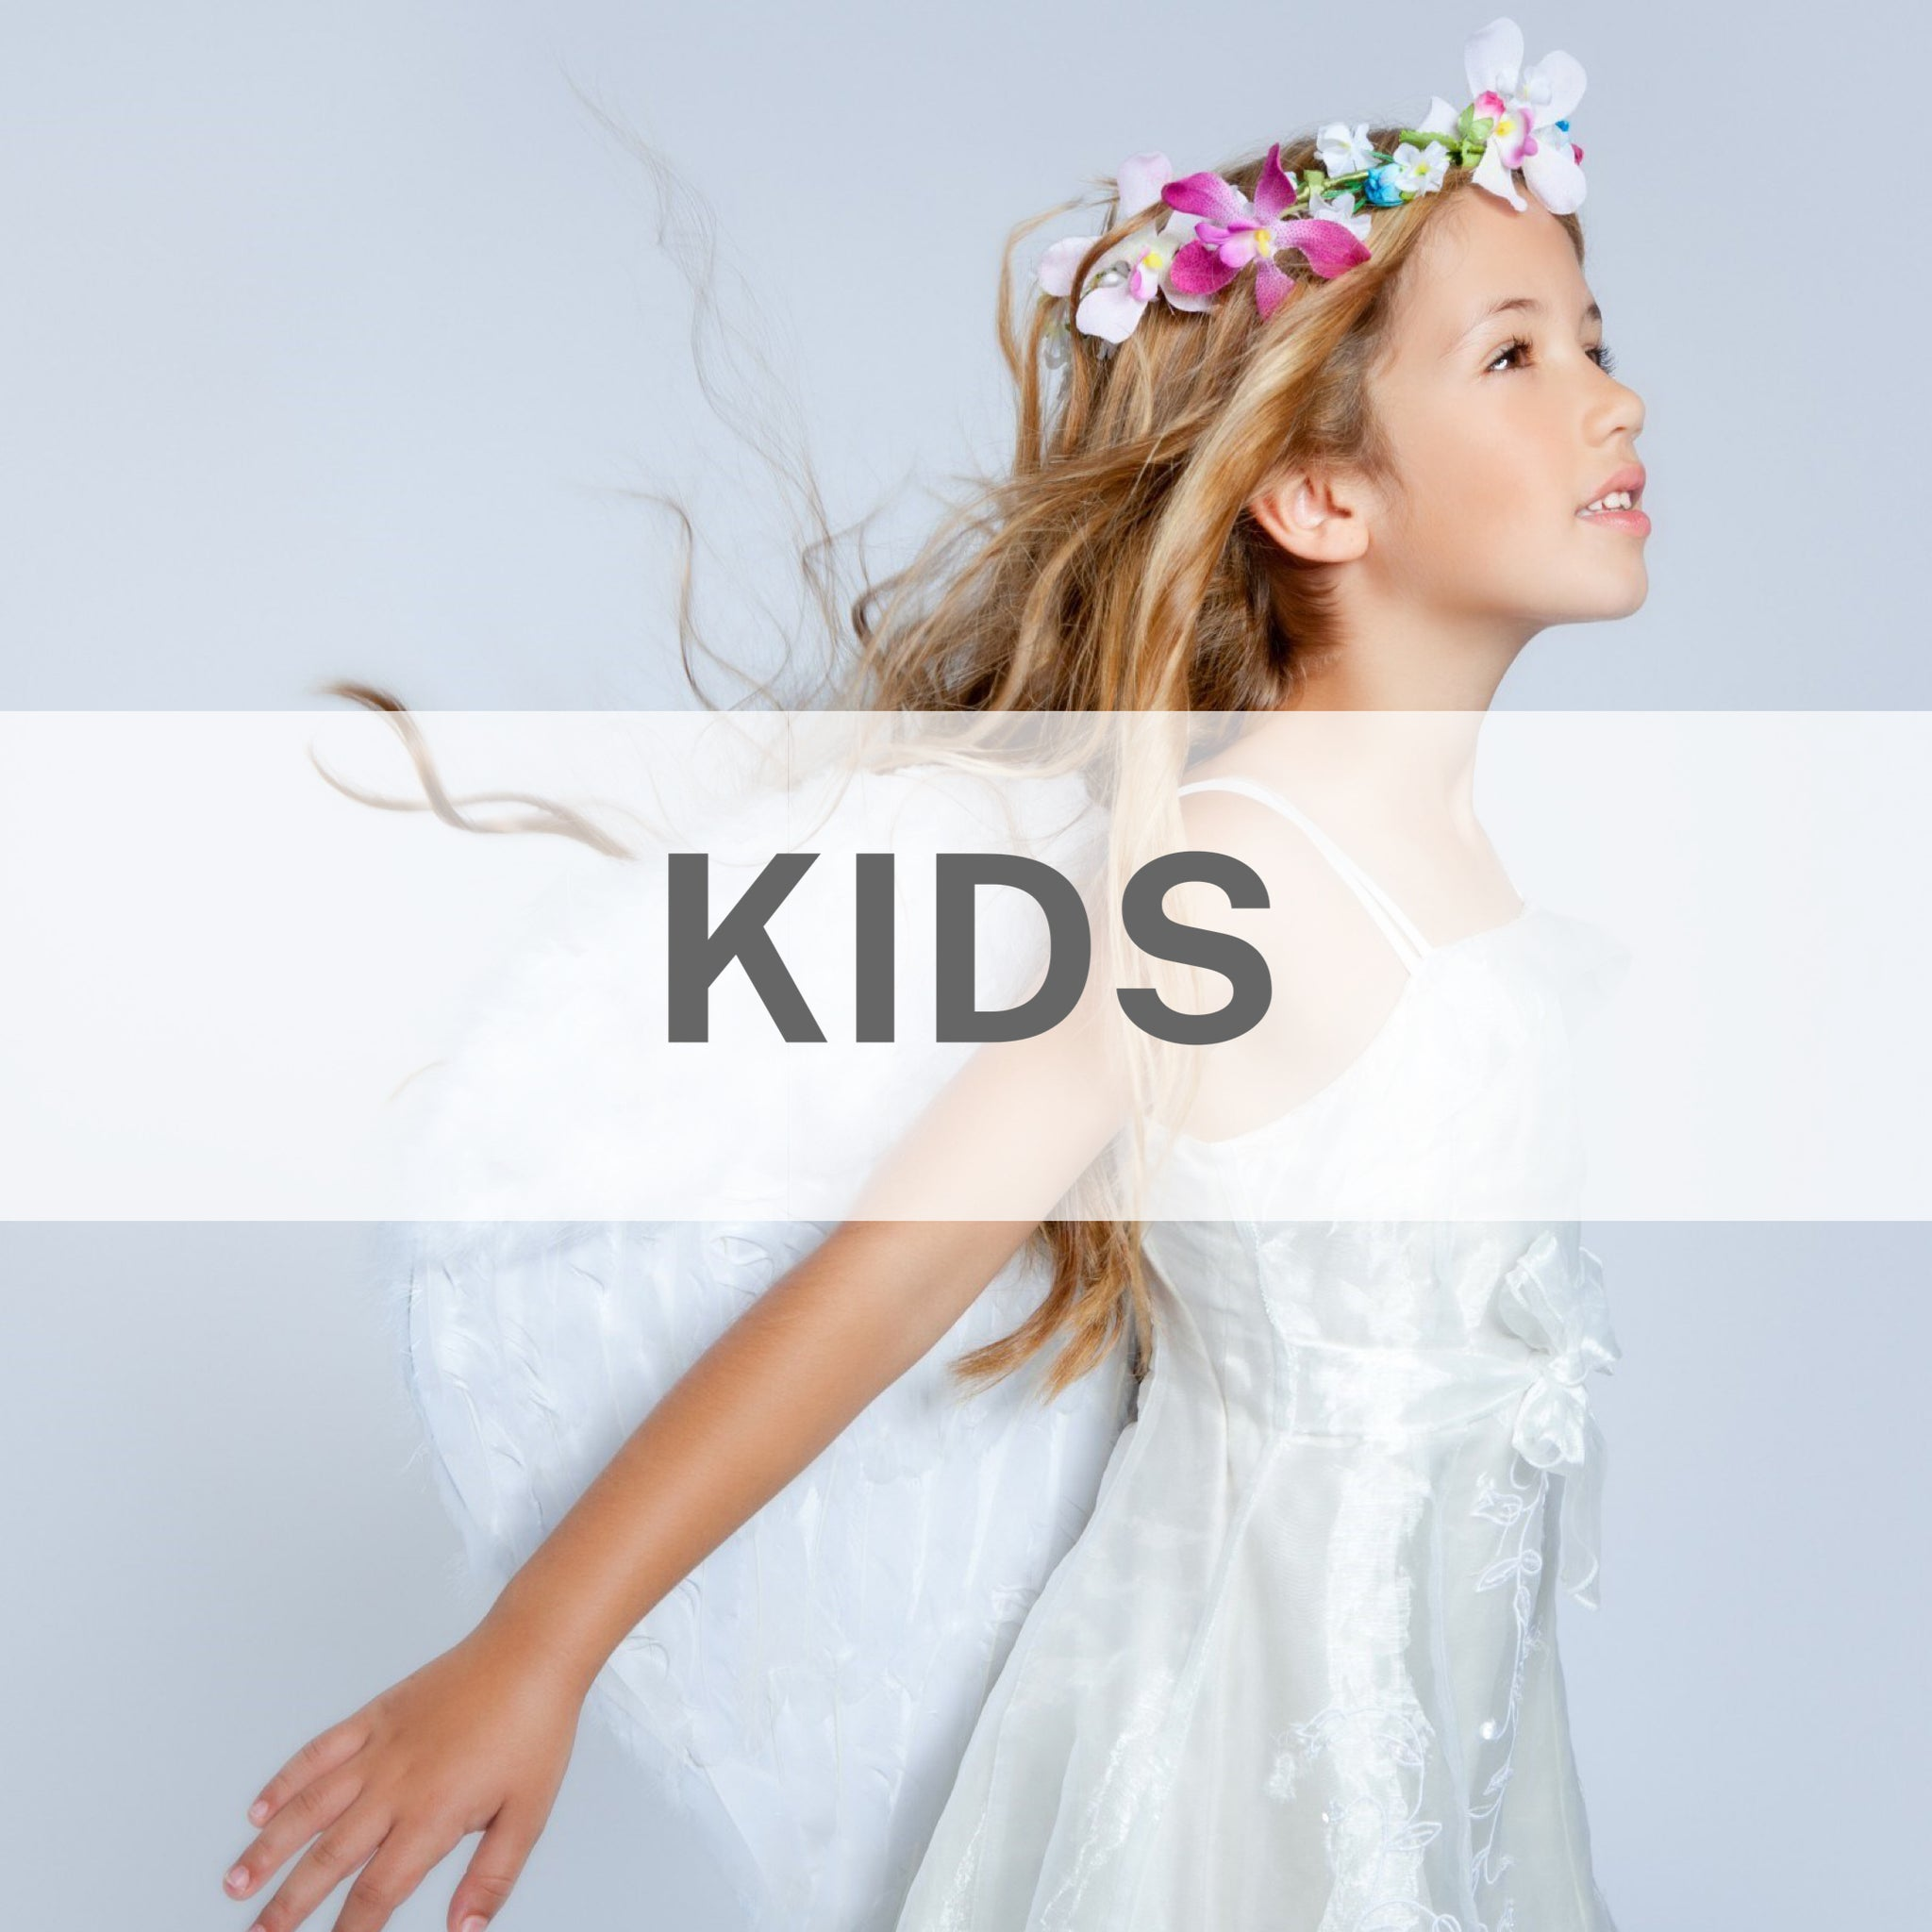 miTeigi | Kids Apparel | Japanese Apparel and Home Decor Retail Shopping